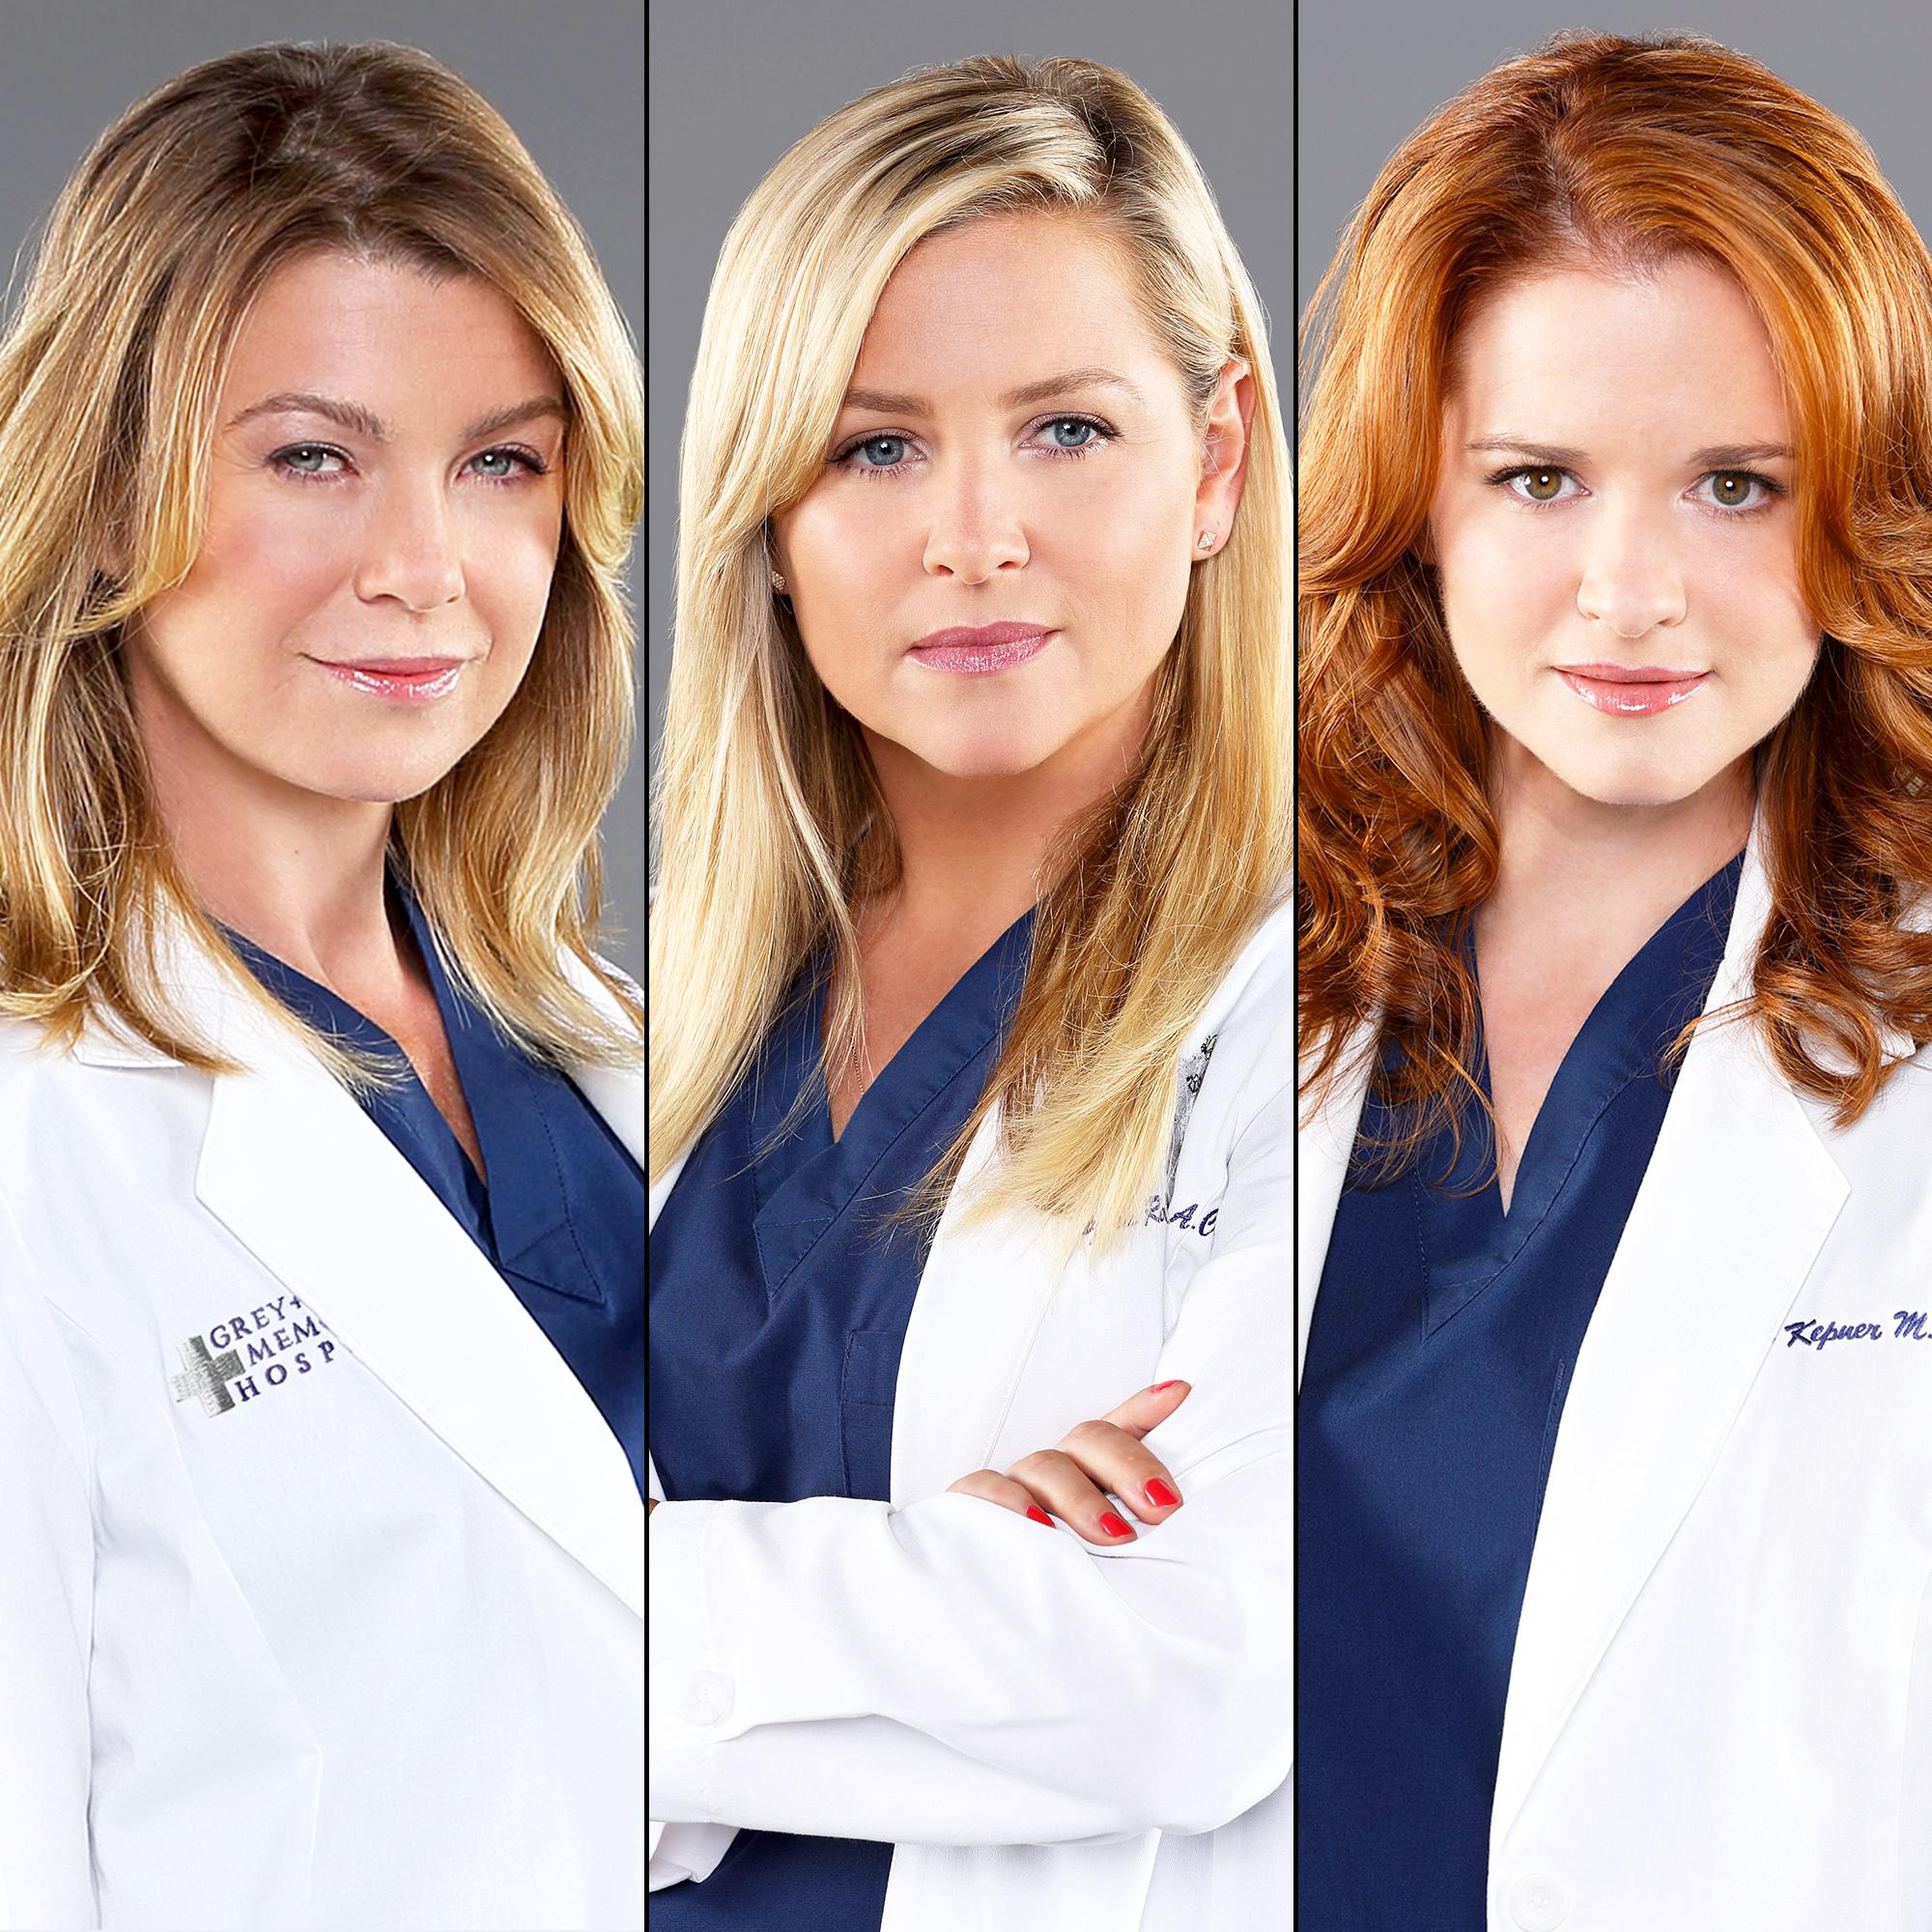 Ellen Pompeo, Jessica Capshaw and Sarah Drew on 'Grey's Anatomy'